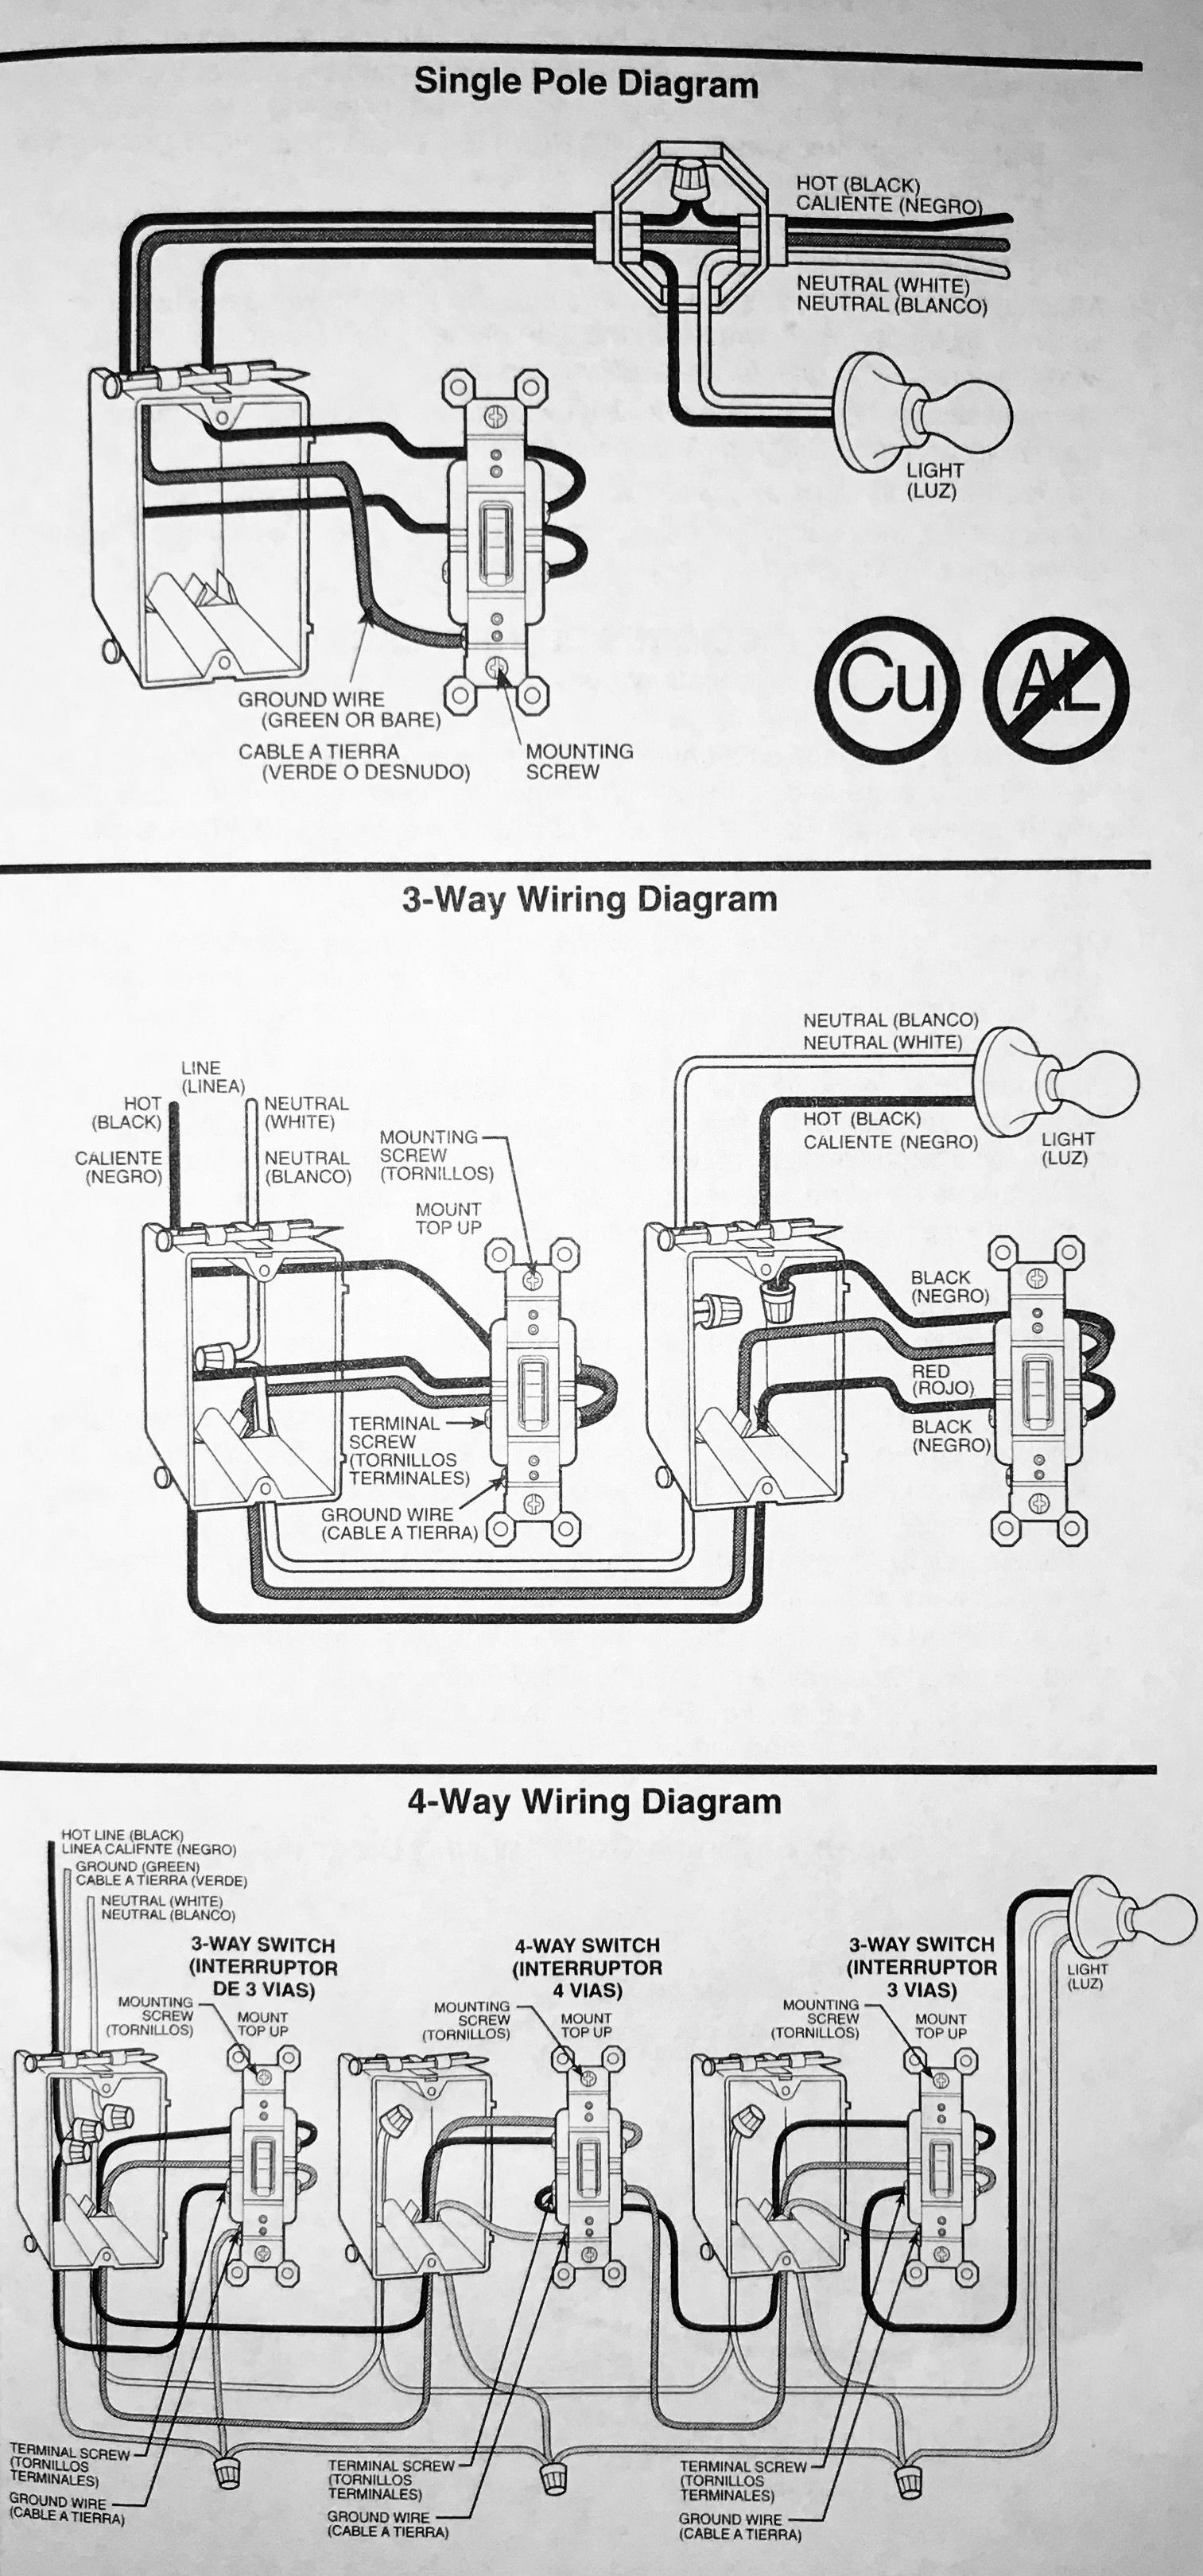 House Wiring Art Library 1990 Peterbilt 379 Headlight Diagram